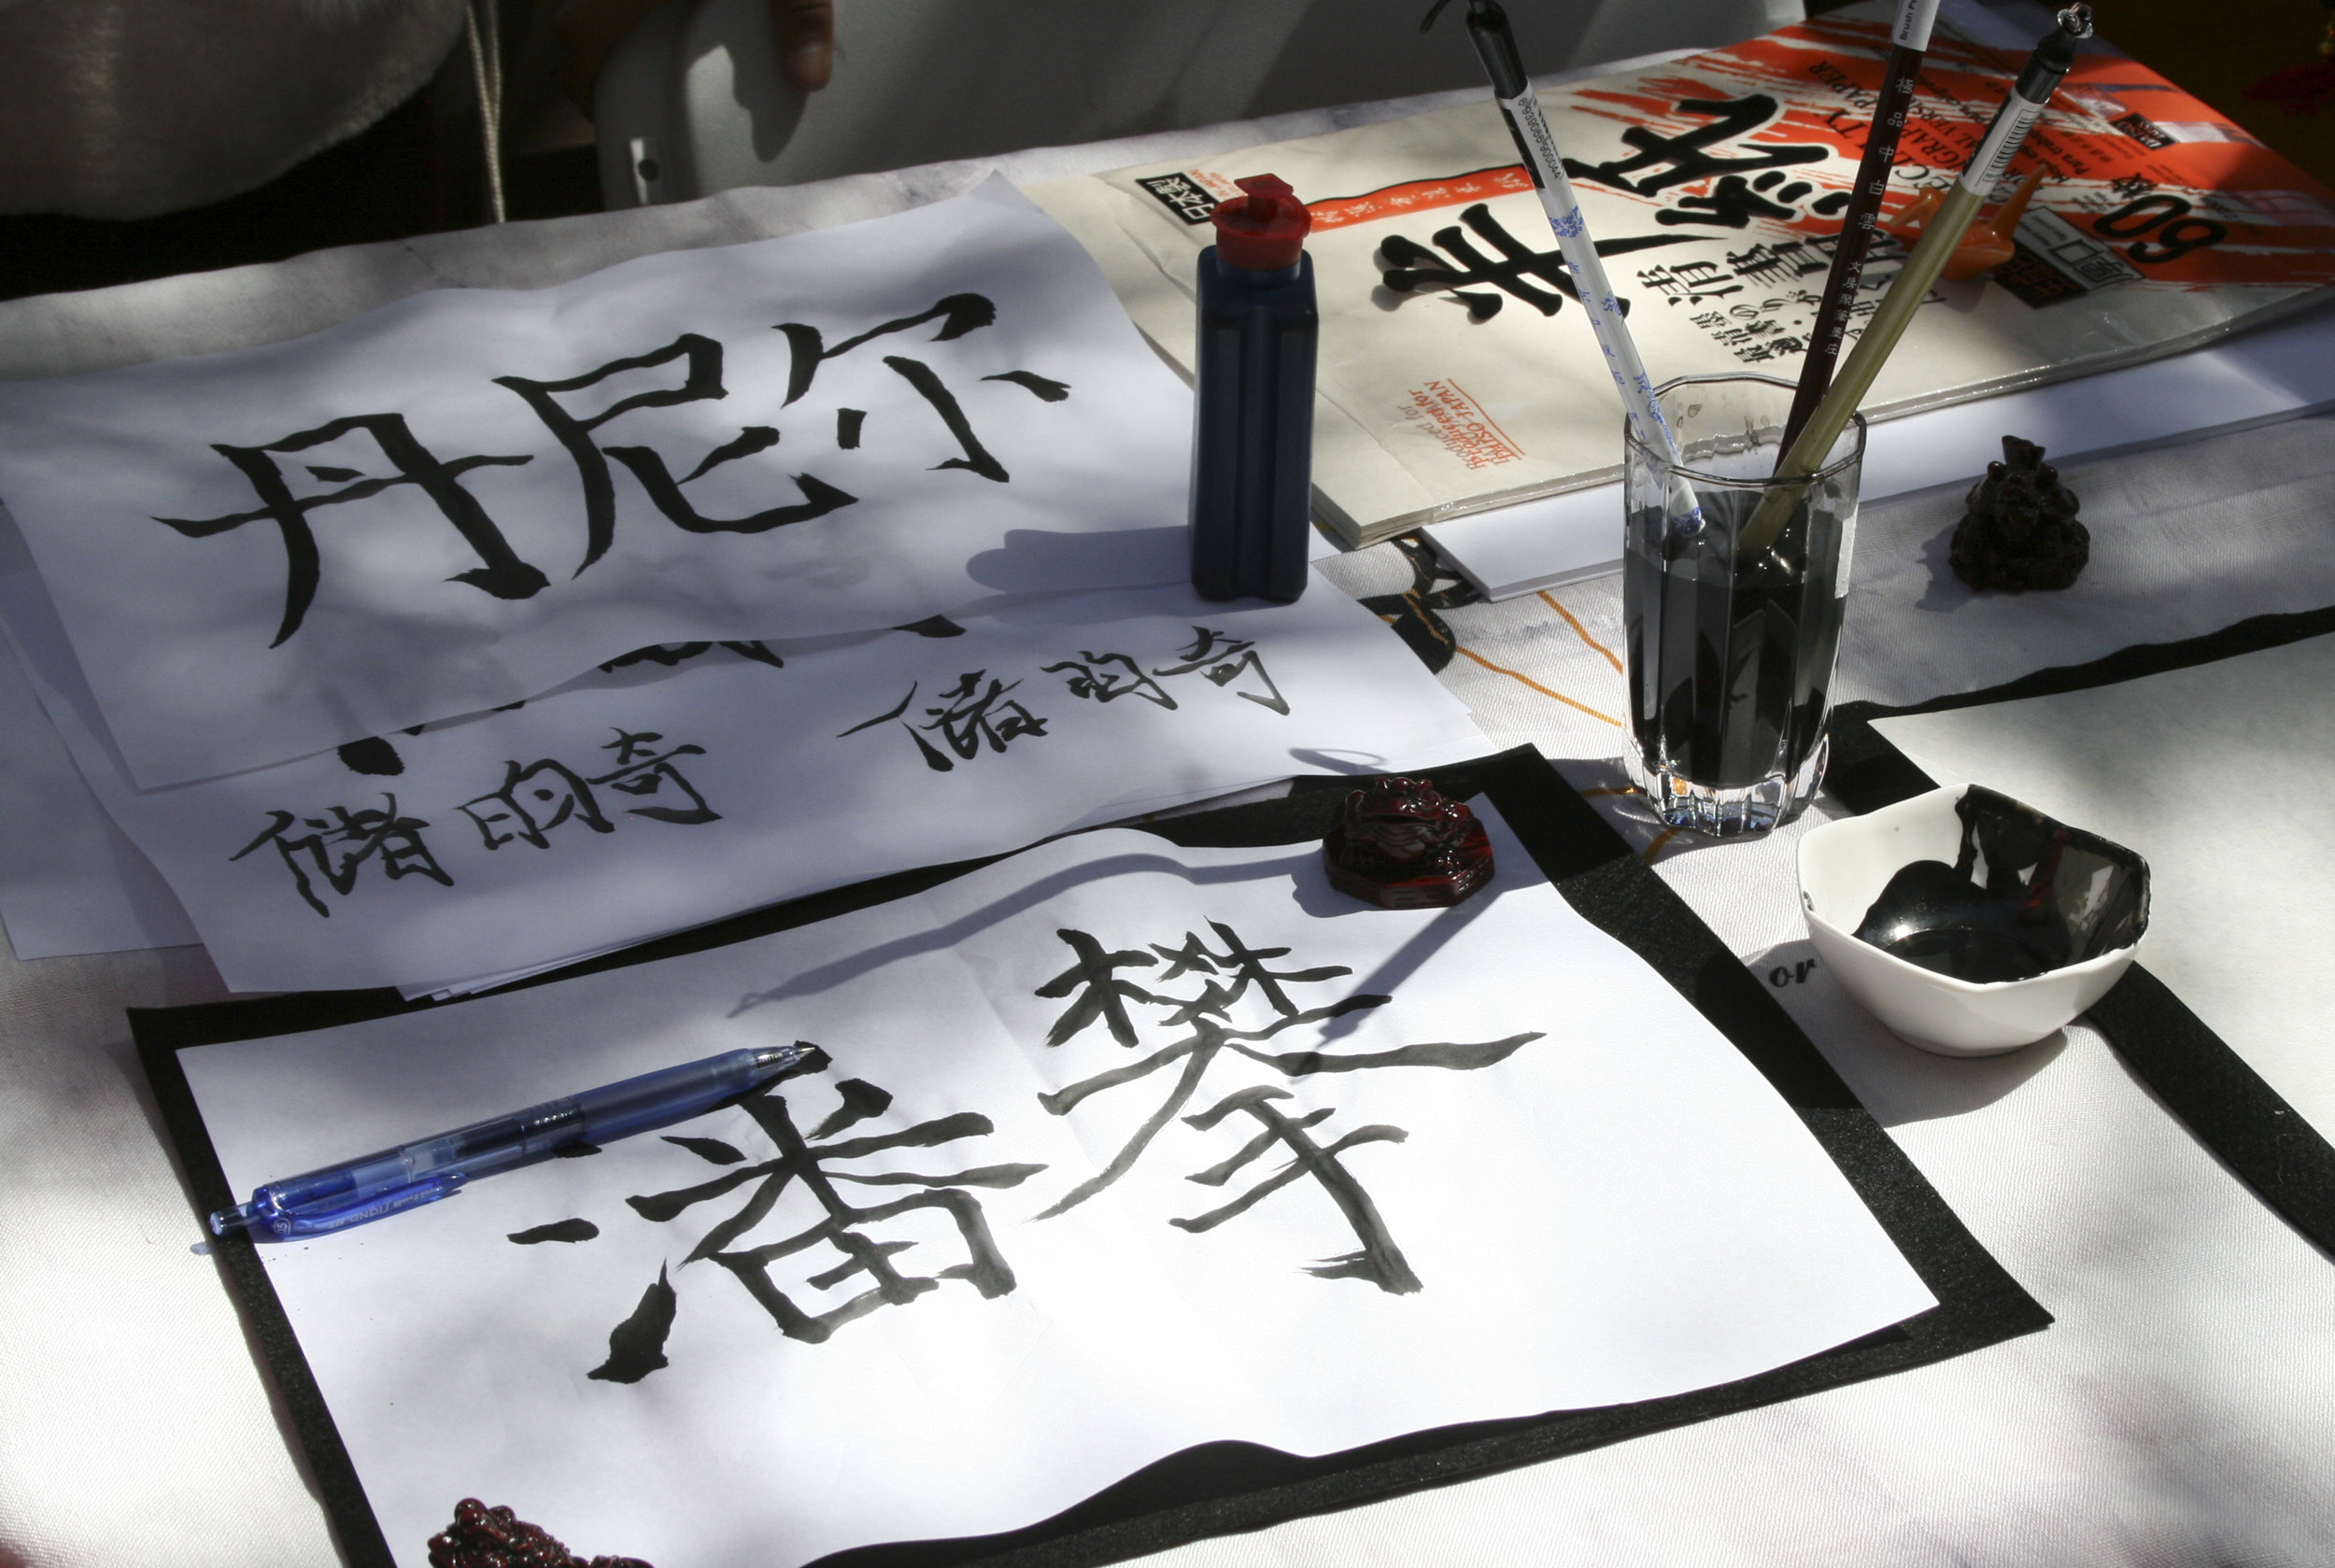 Club awareness day at main campus Santa Monica College, the Chinese club leave out the calligraphy utensils while promoting their club. March 28, 2019. (Janet Ali/ The Corsair)